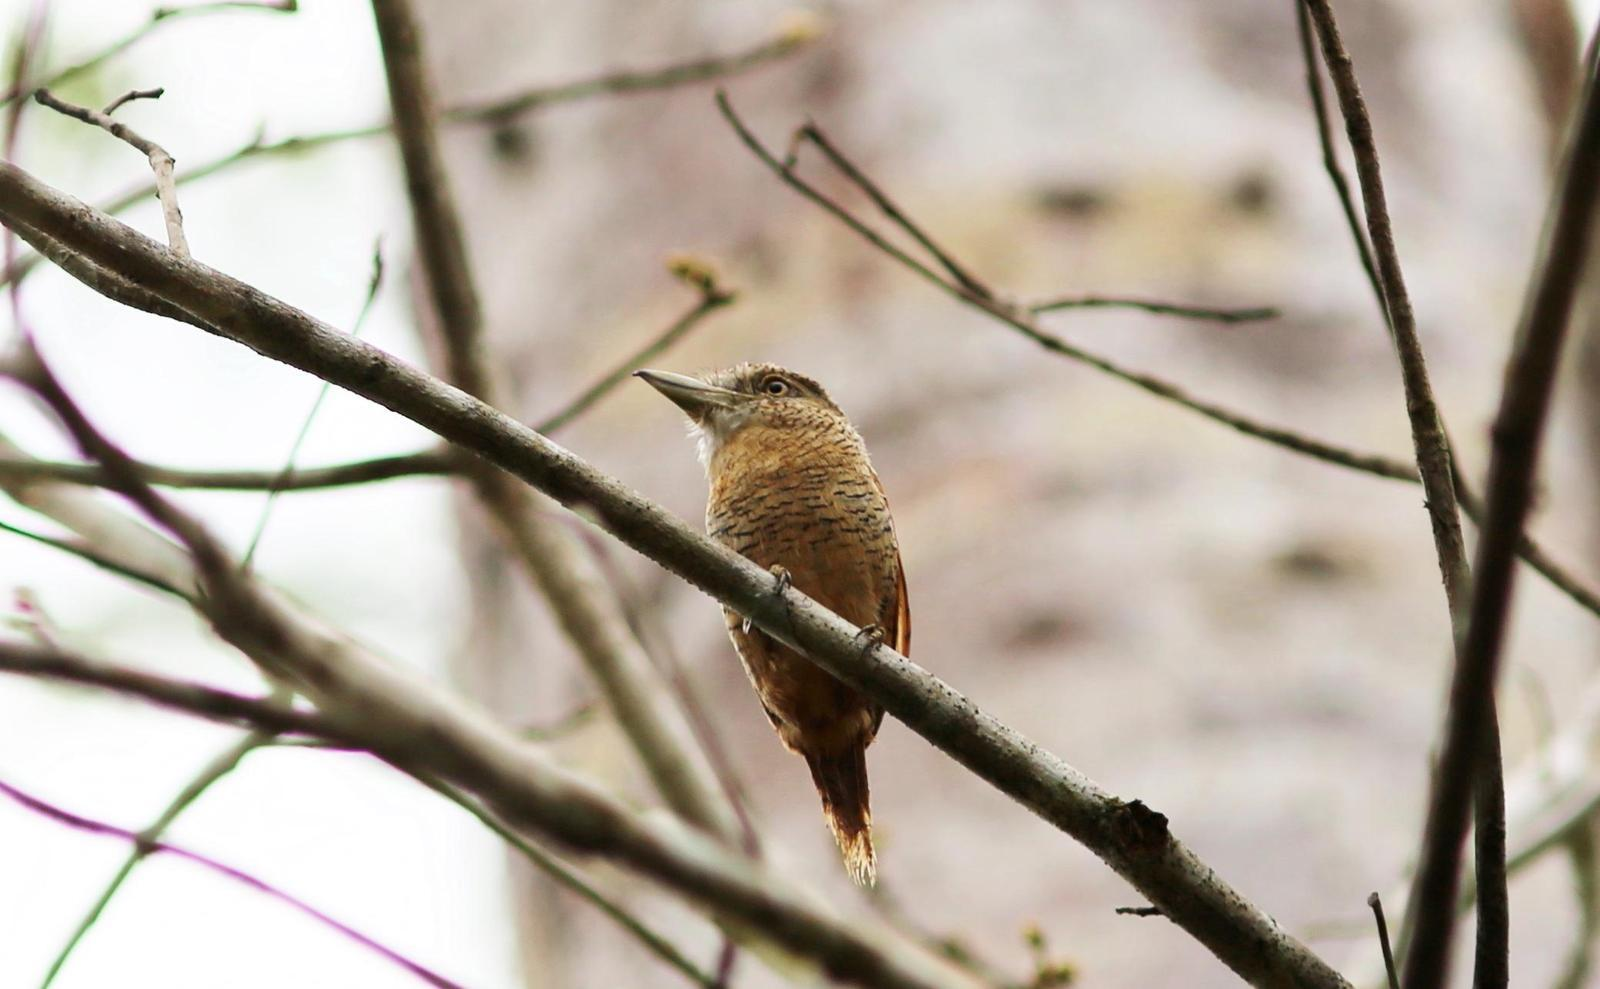 Barred Puffbird Photo by Rohan van Twest